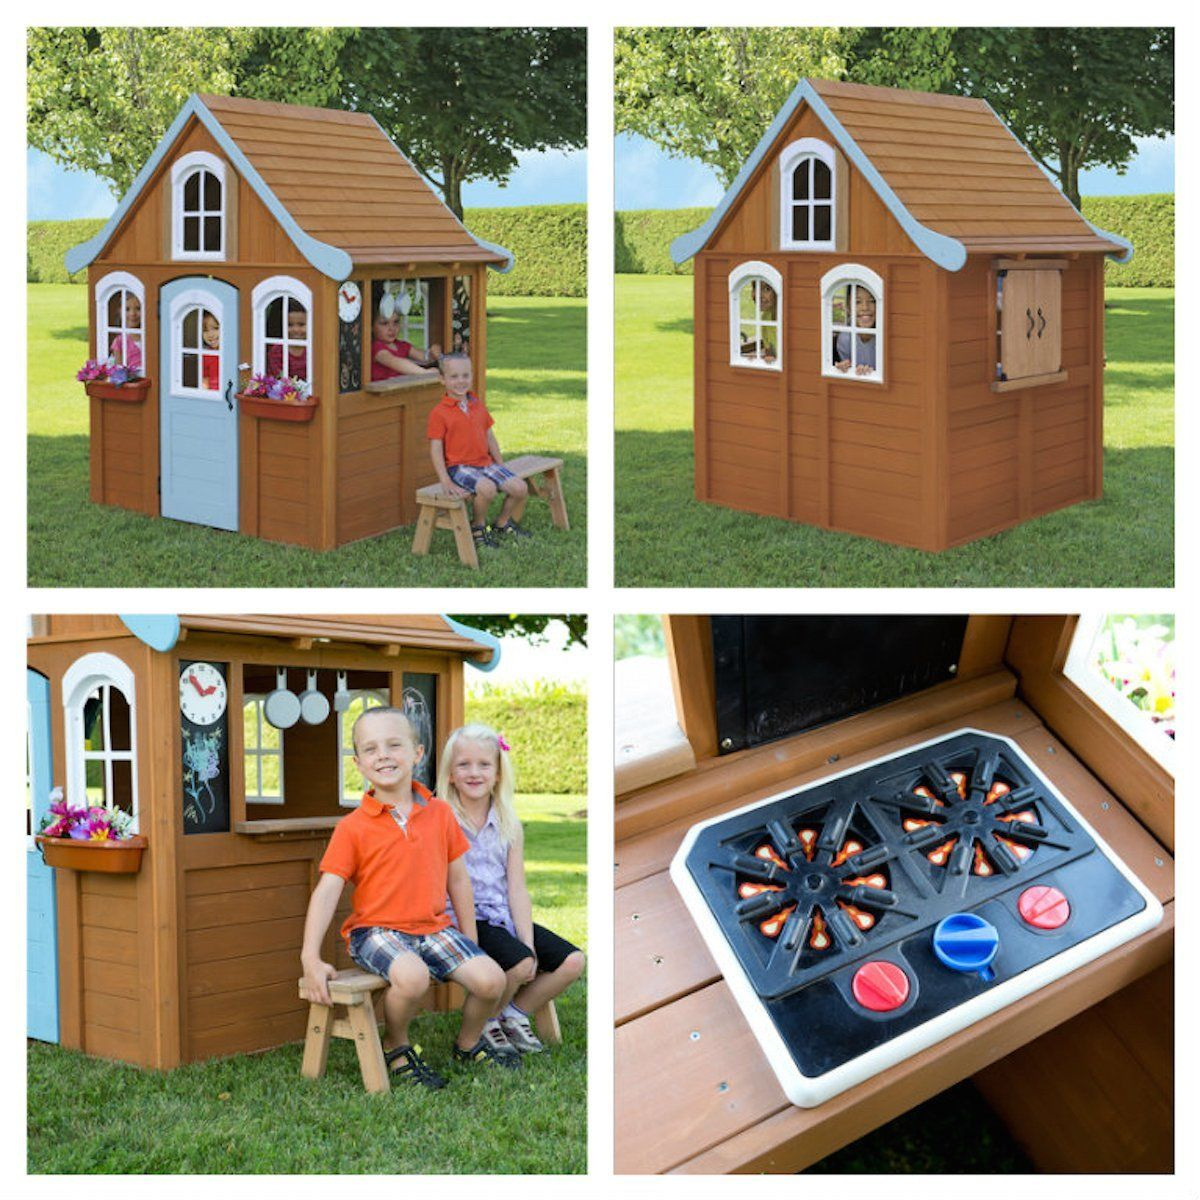 Playhouse for children in the country - photos and ideas